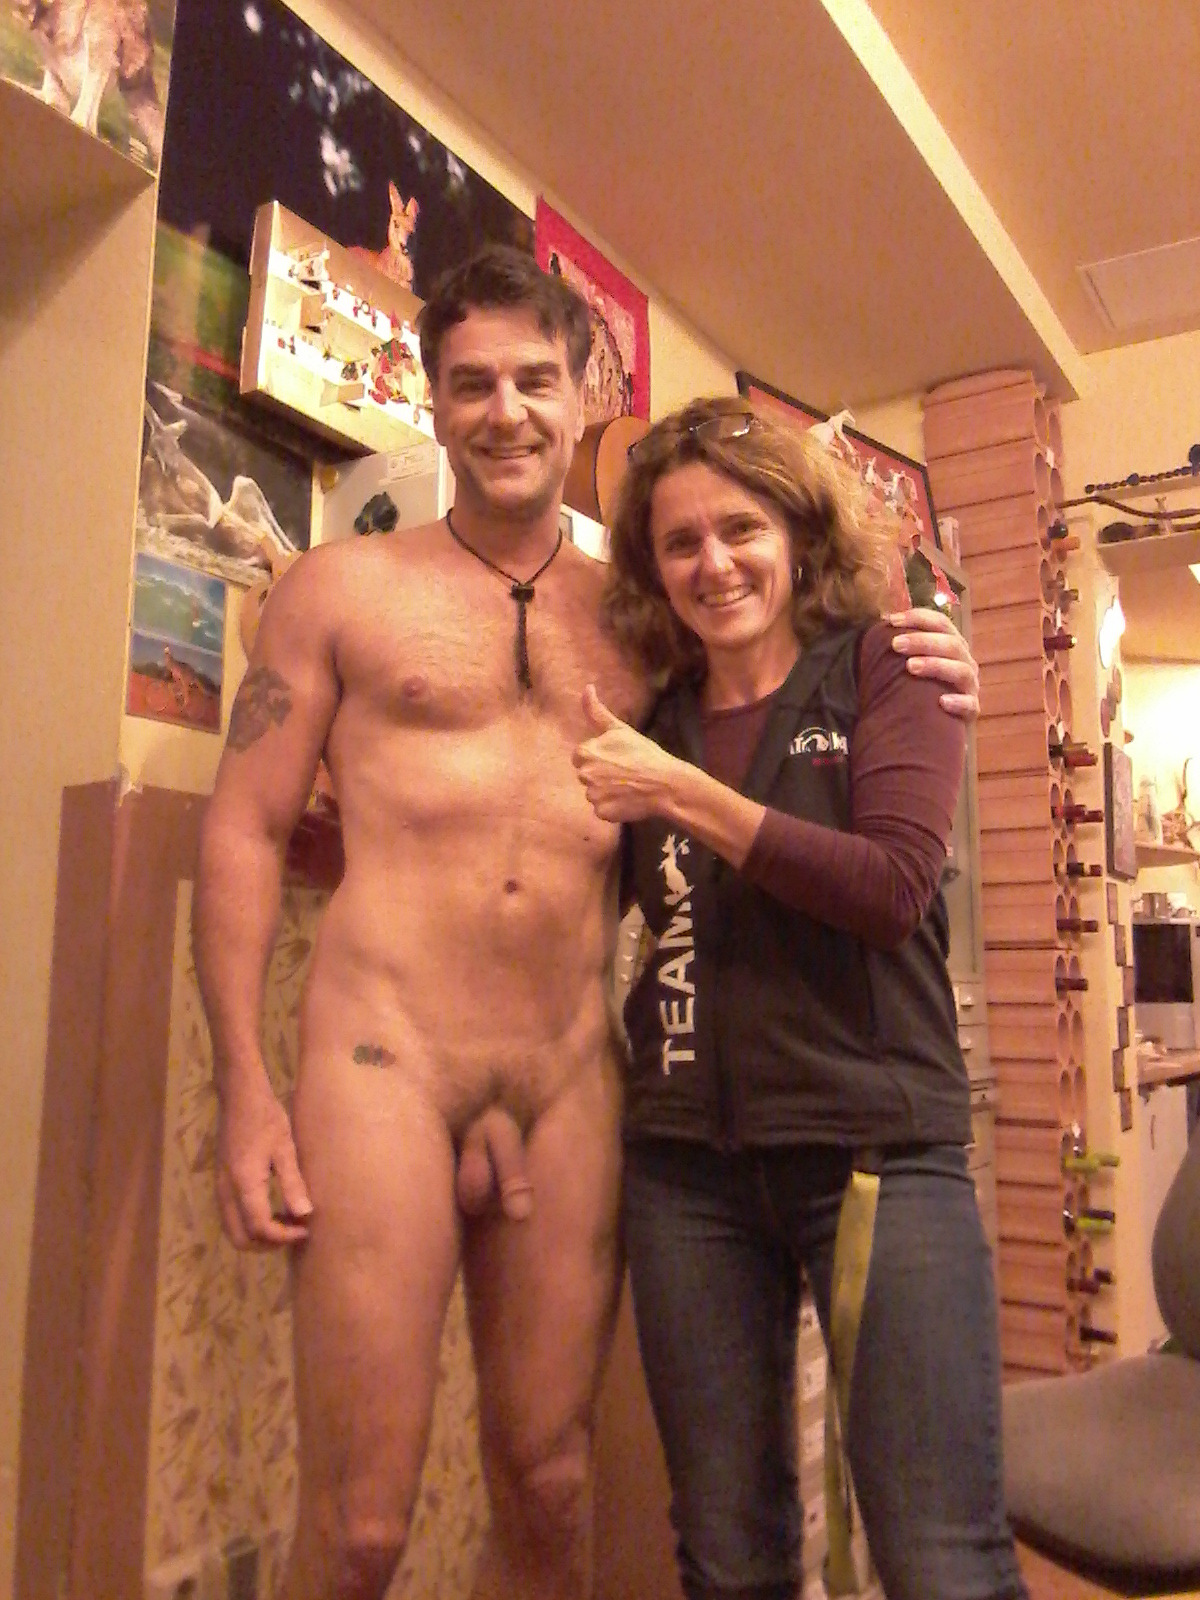 My Cfnm marie cfnm - clothed female nude male